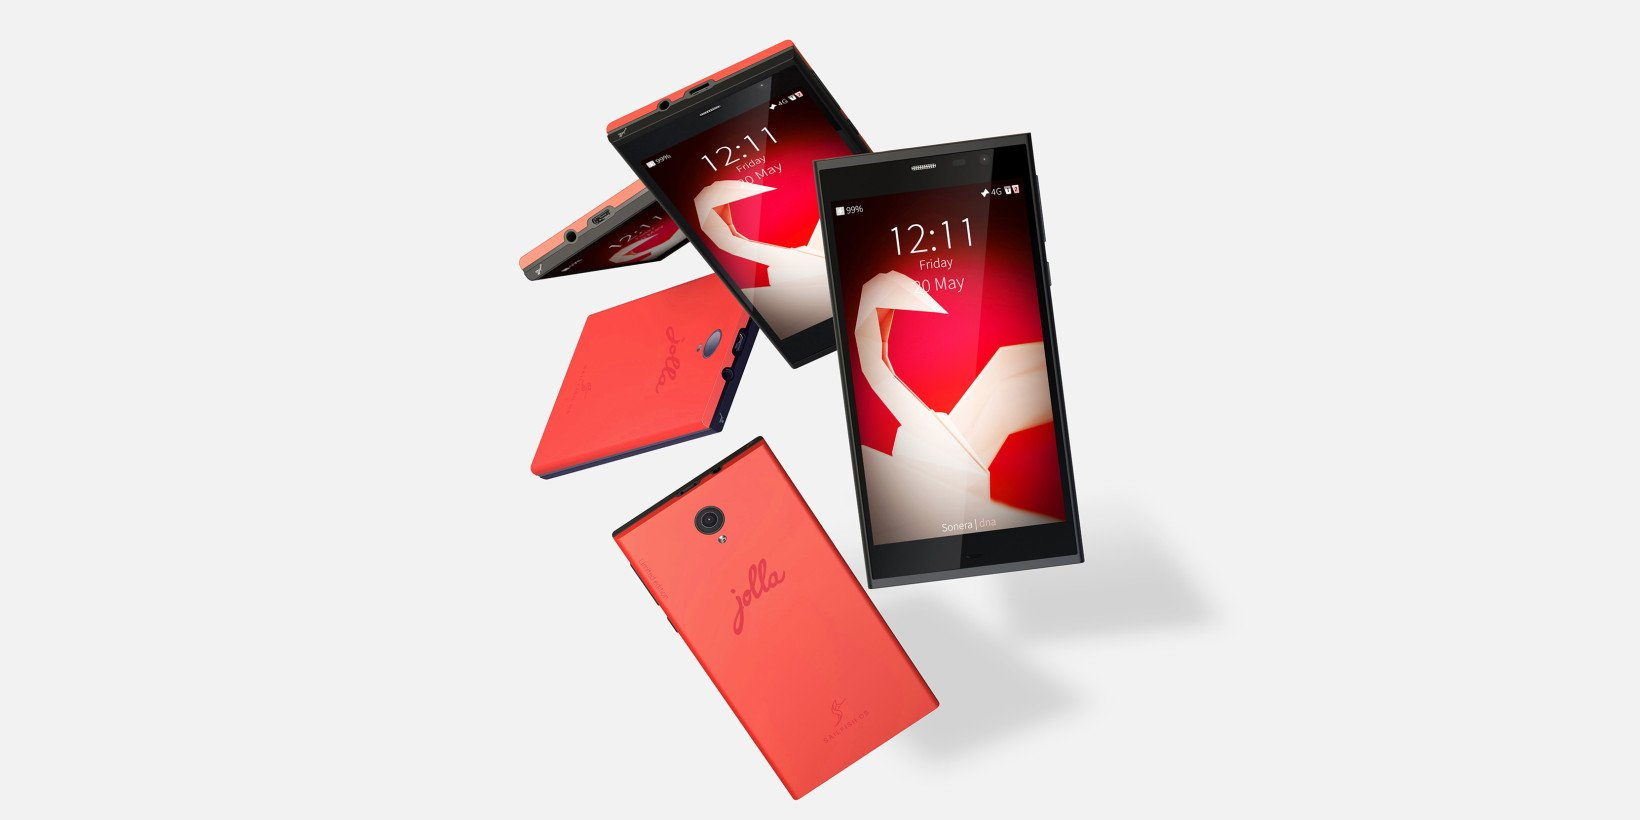 RT @TheNextWeb: Jolla's new €169 Sailfish OS phone is already sold out https://t.co/OAxZKpoHrz https://t.co/cx4plf7IS9